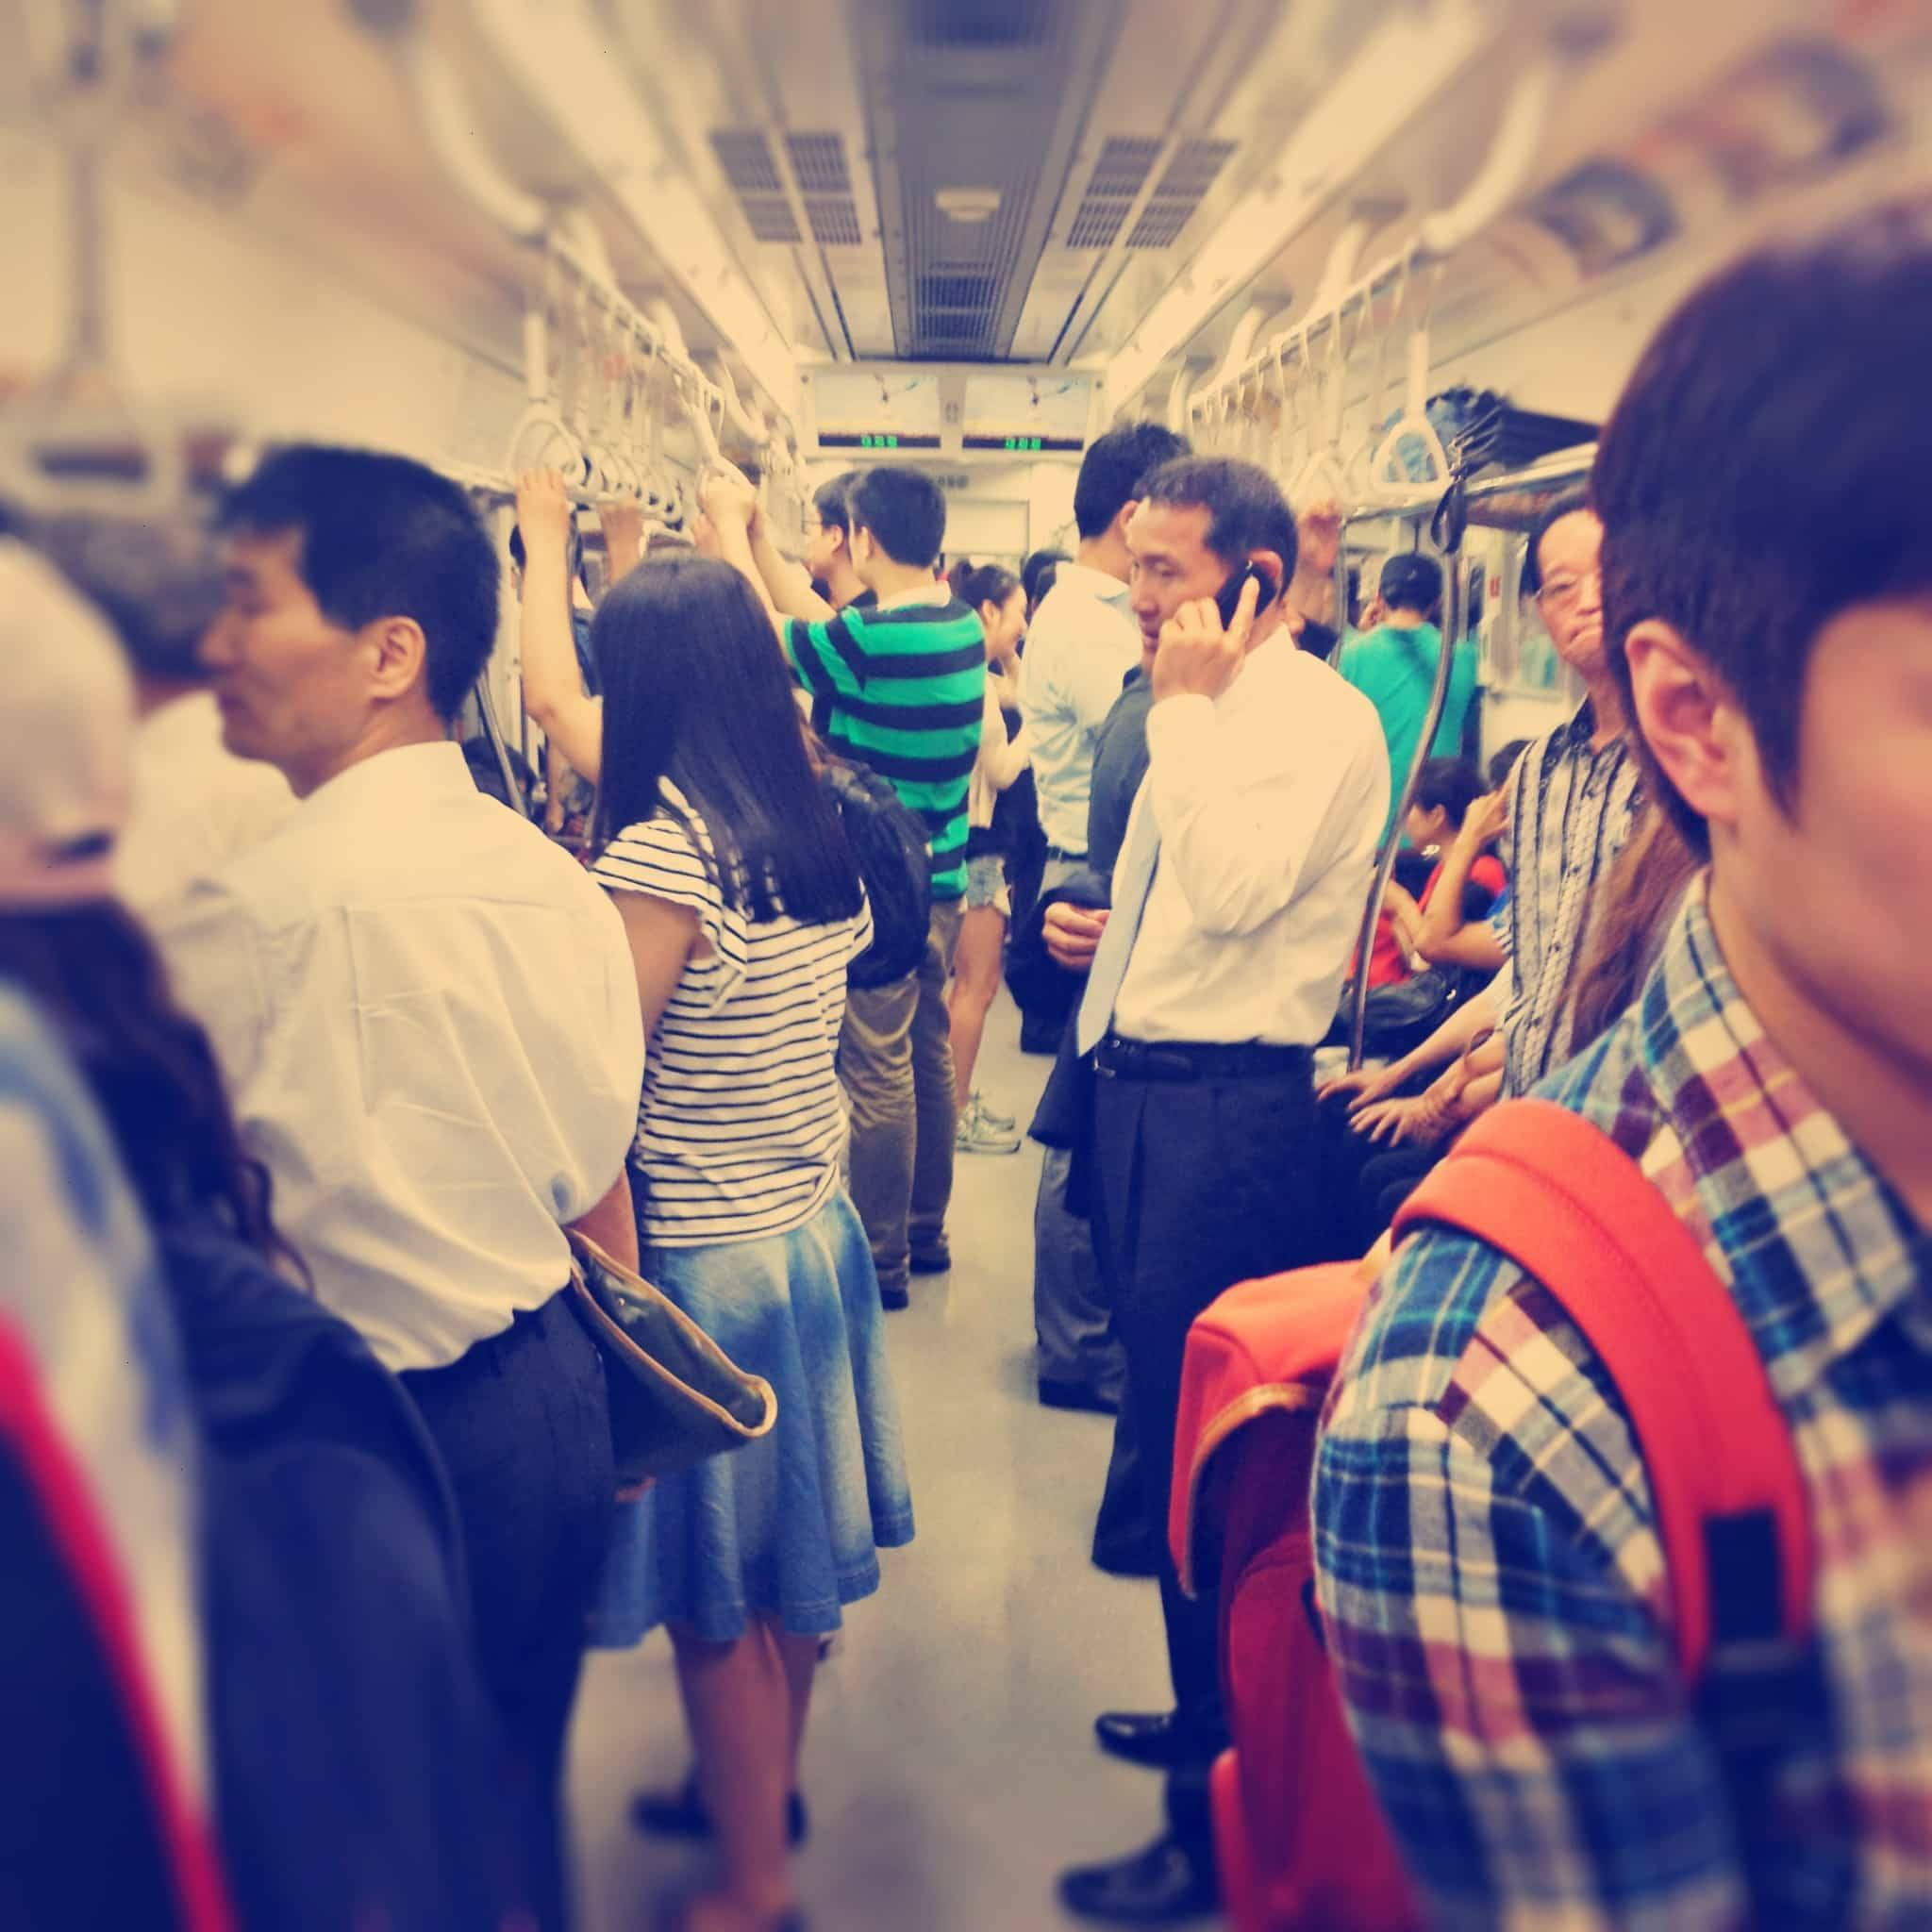 Train in Seoul filled with people.